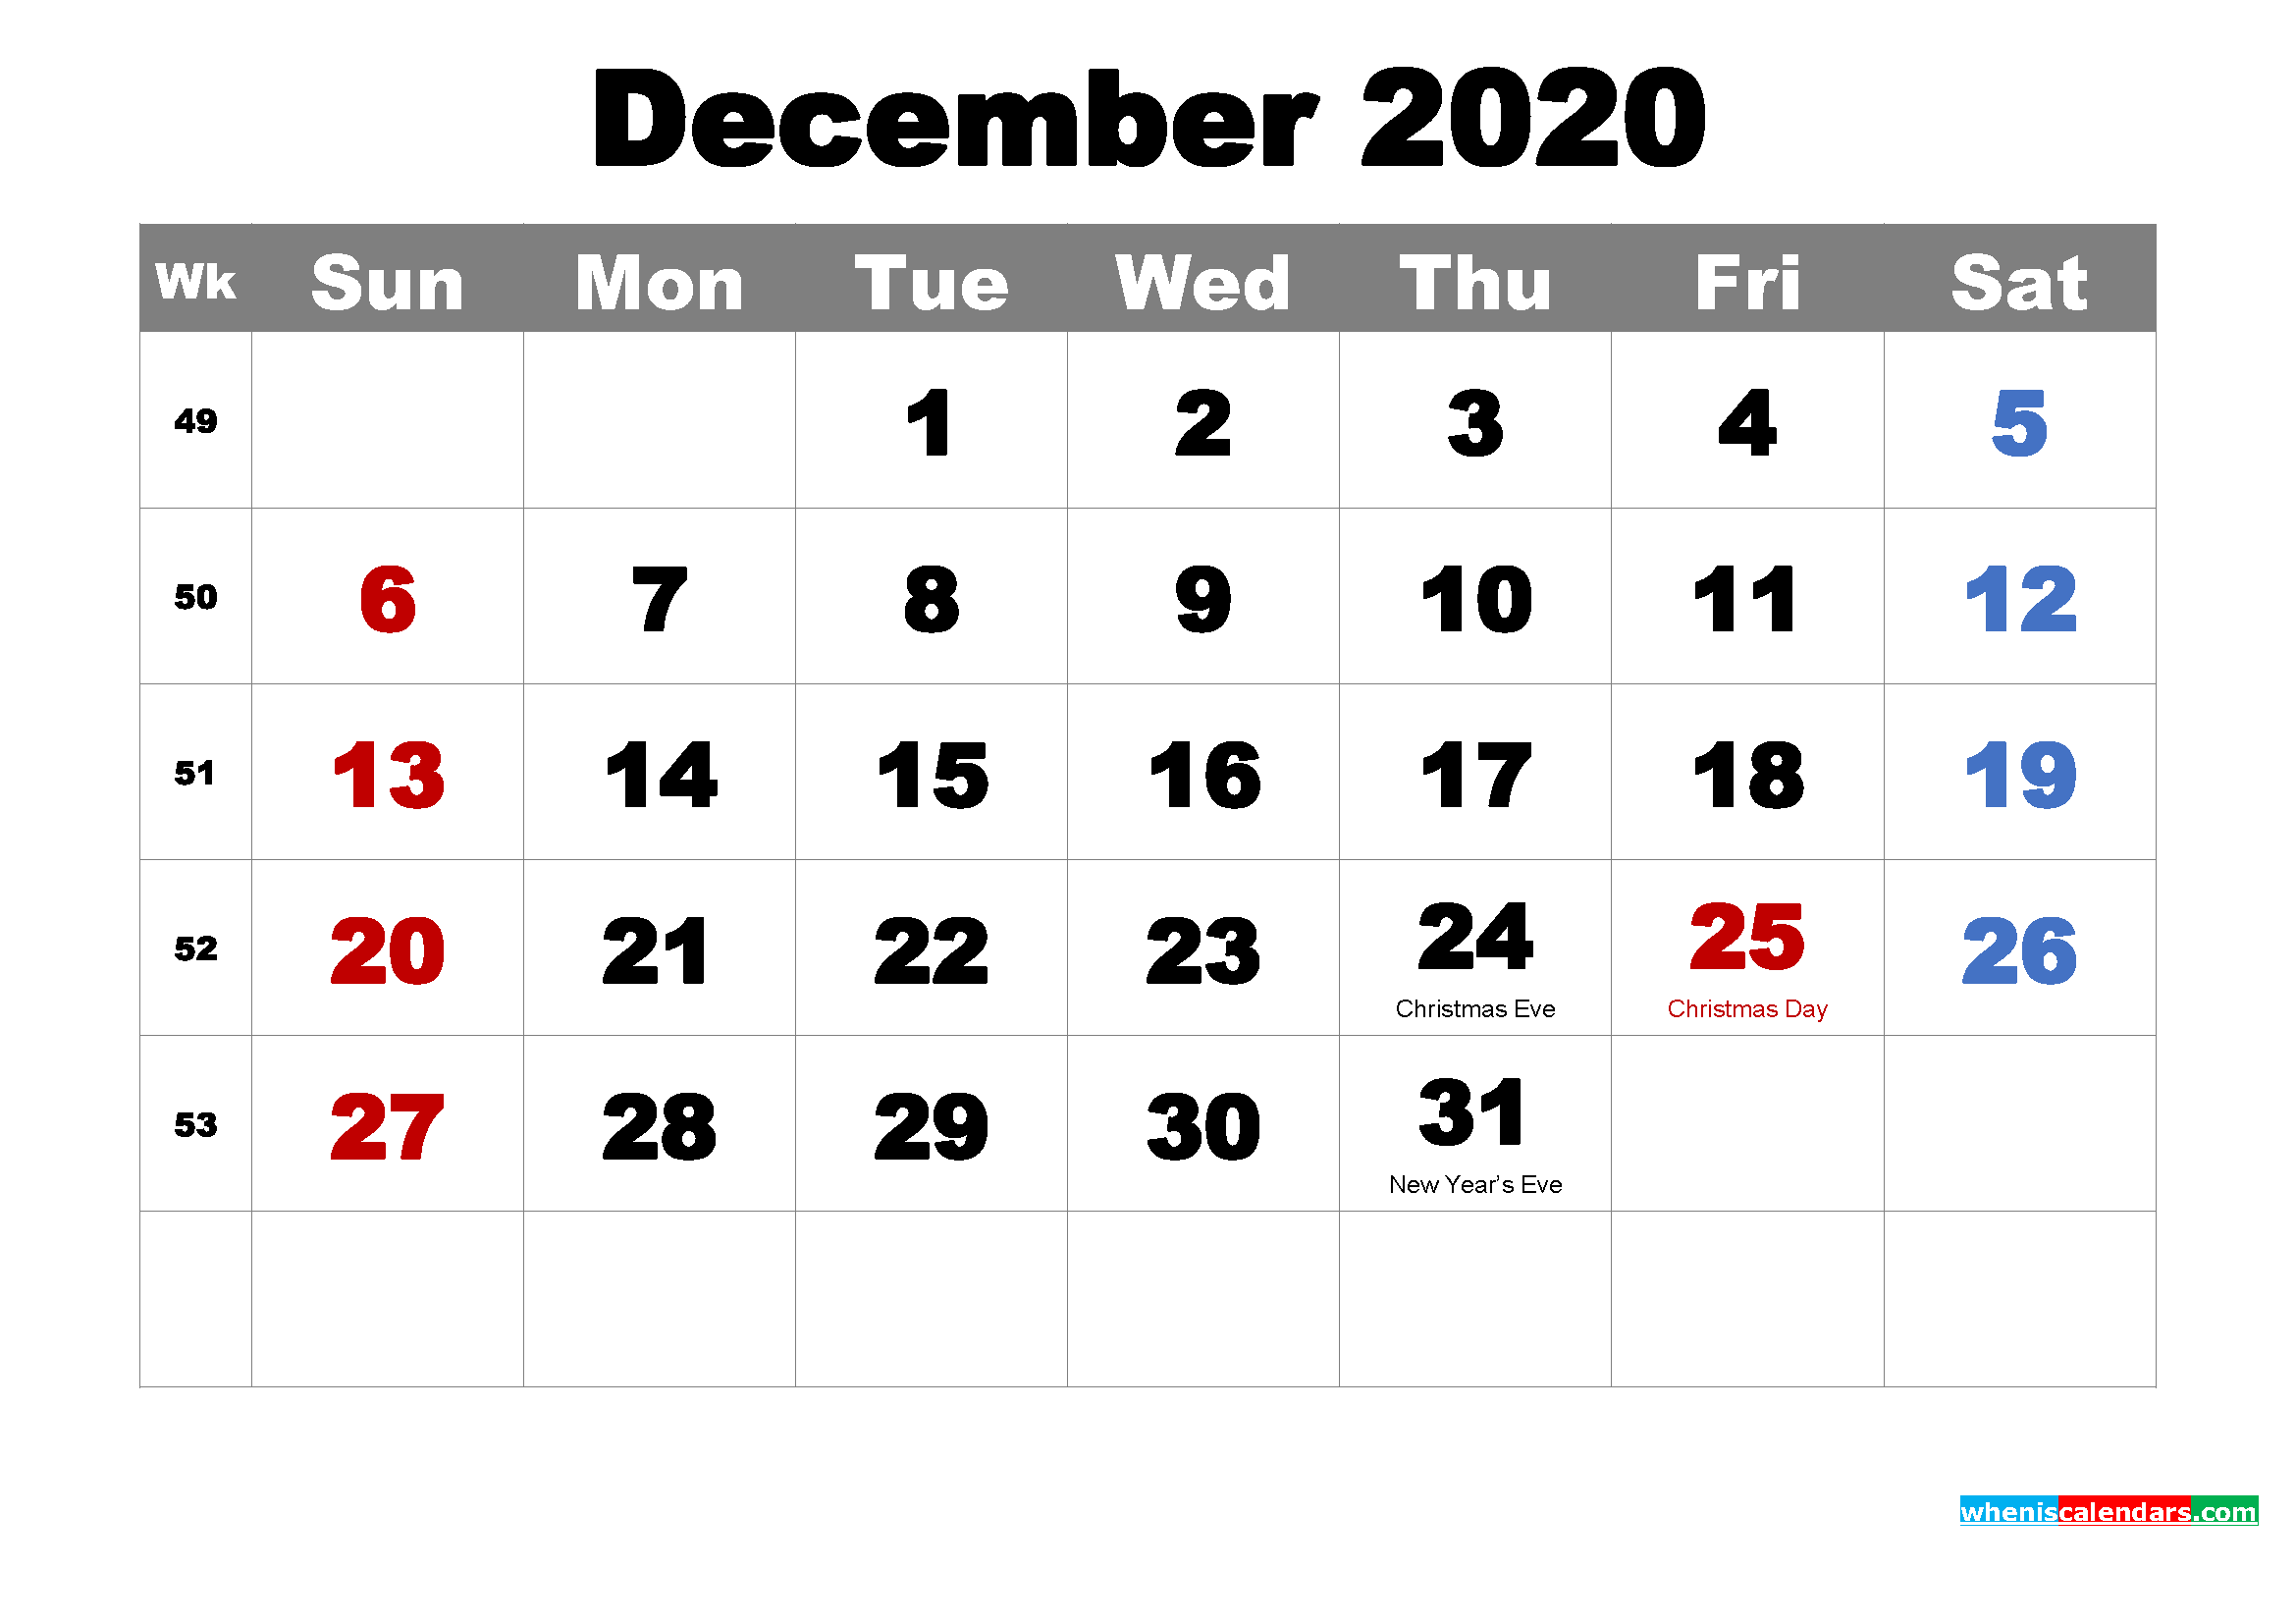 december 2020 monthly calendar printable holidays arialblk